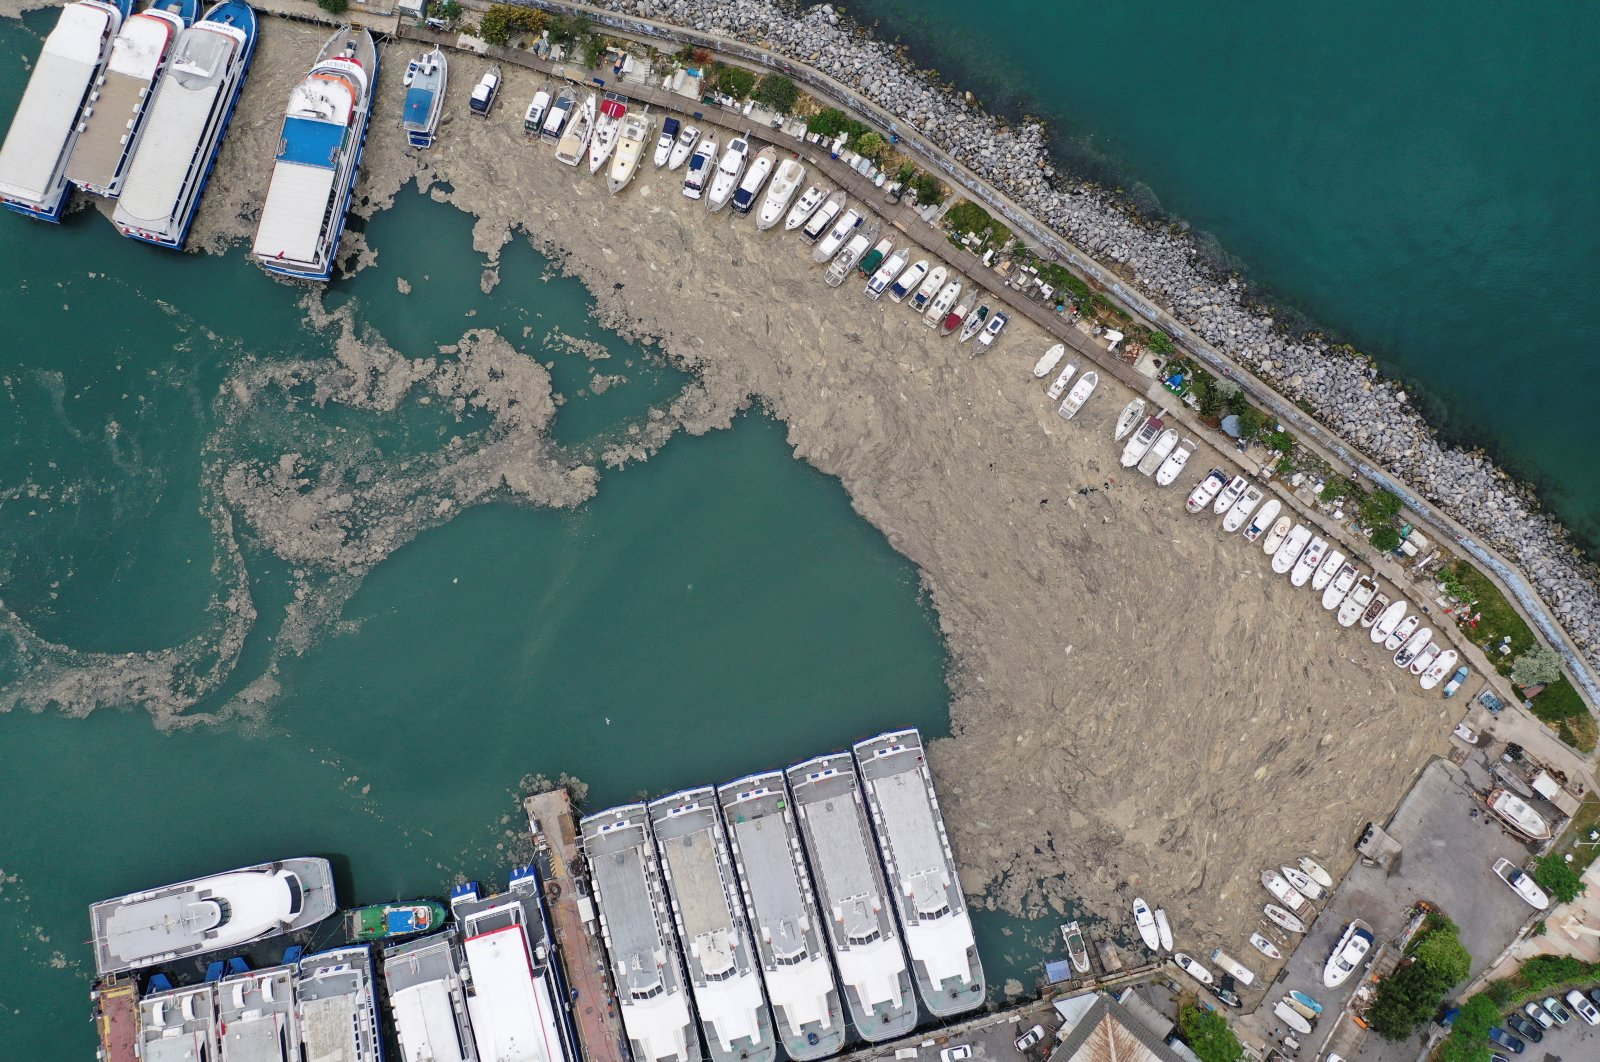 """An aerial view shows a thick layer of """"sea snot,"""" consisting of a wide variety of microorganisms, that covers the sea near the coast in the Bostancı harbor in Istanbul, Turkey, May 31, 2021. (Reuters Photo)"""